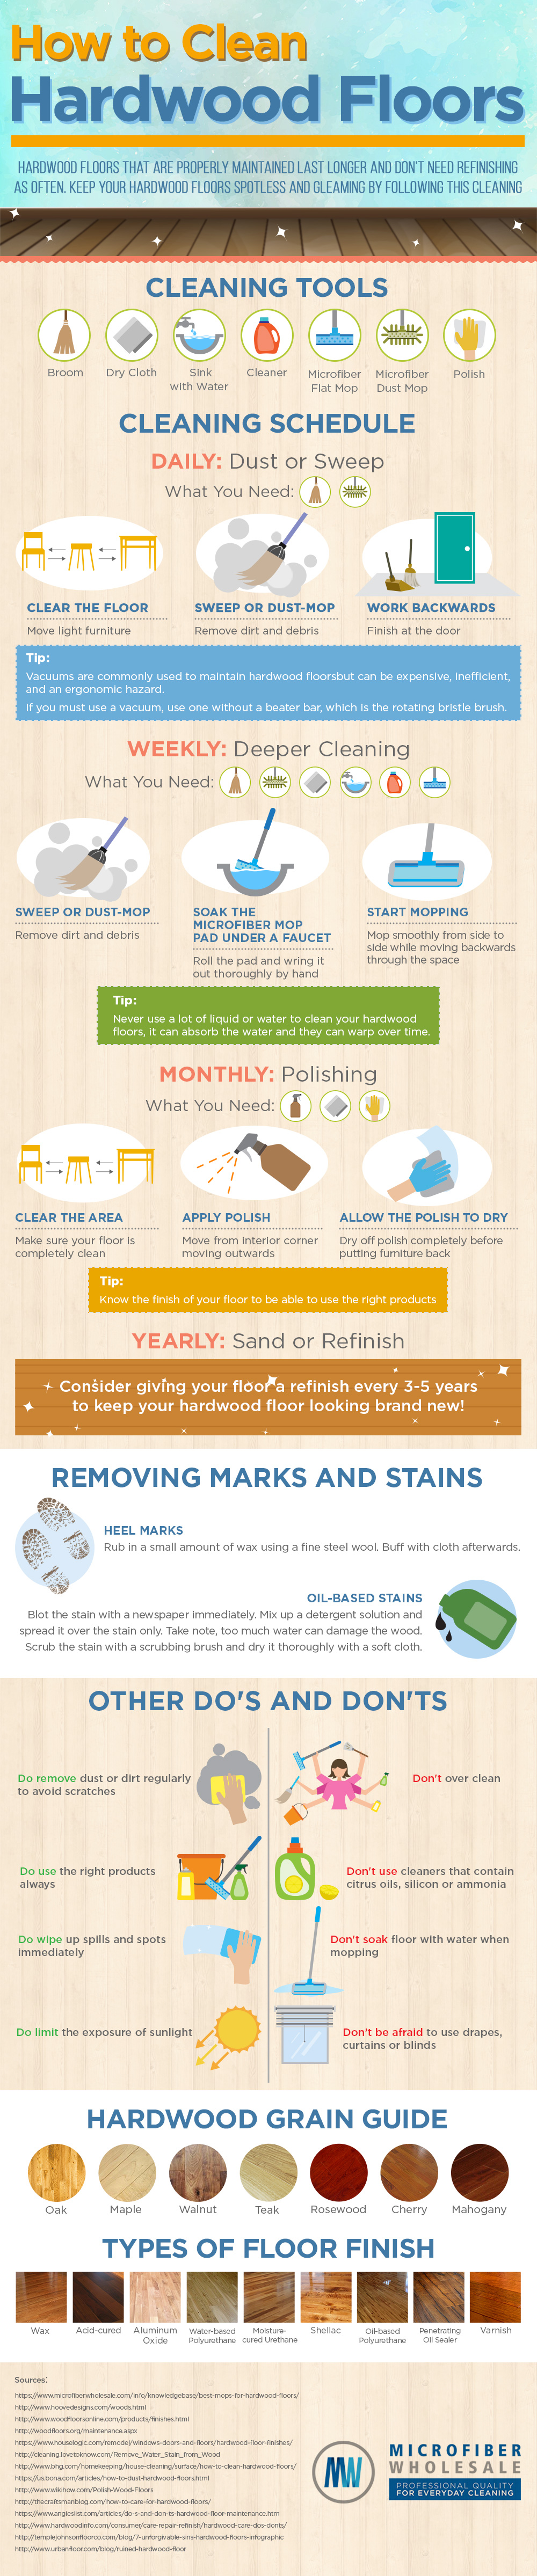 How to clean harwood floors infographic